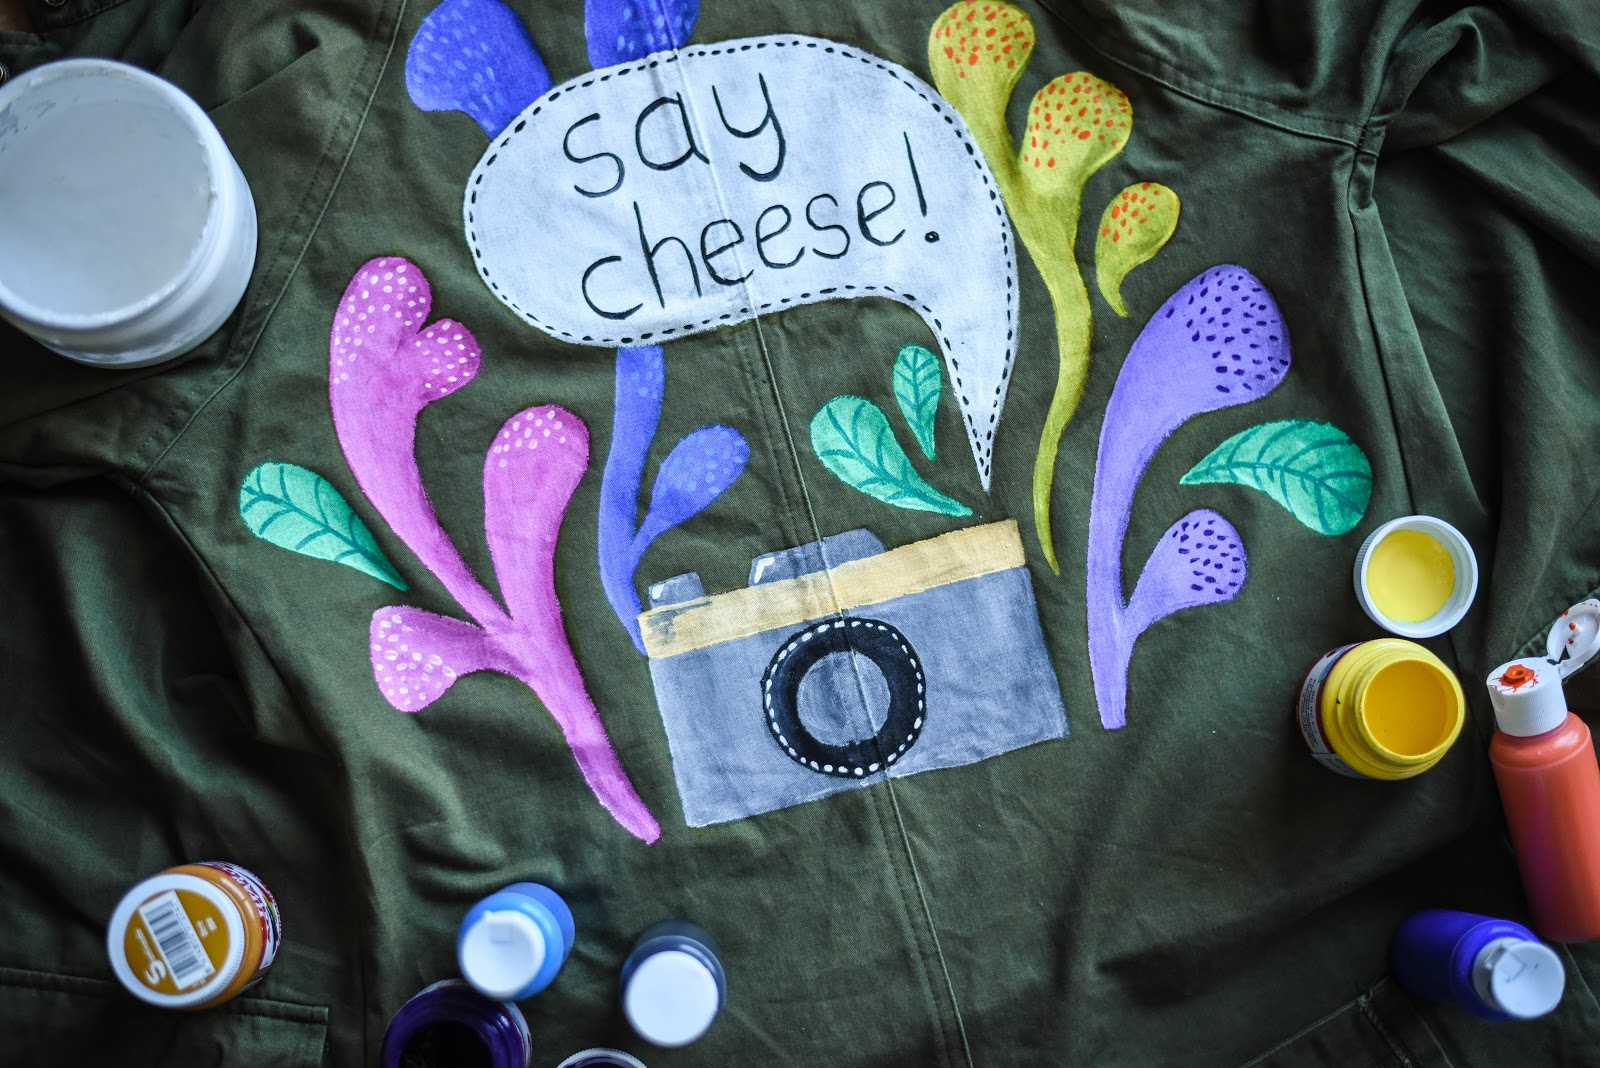 diy_customized_jacket_drawing_painted_illustration